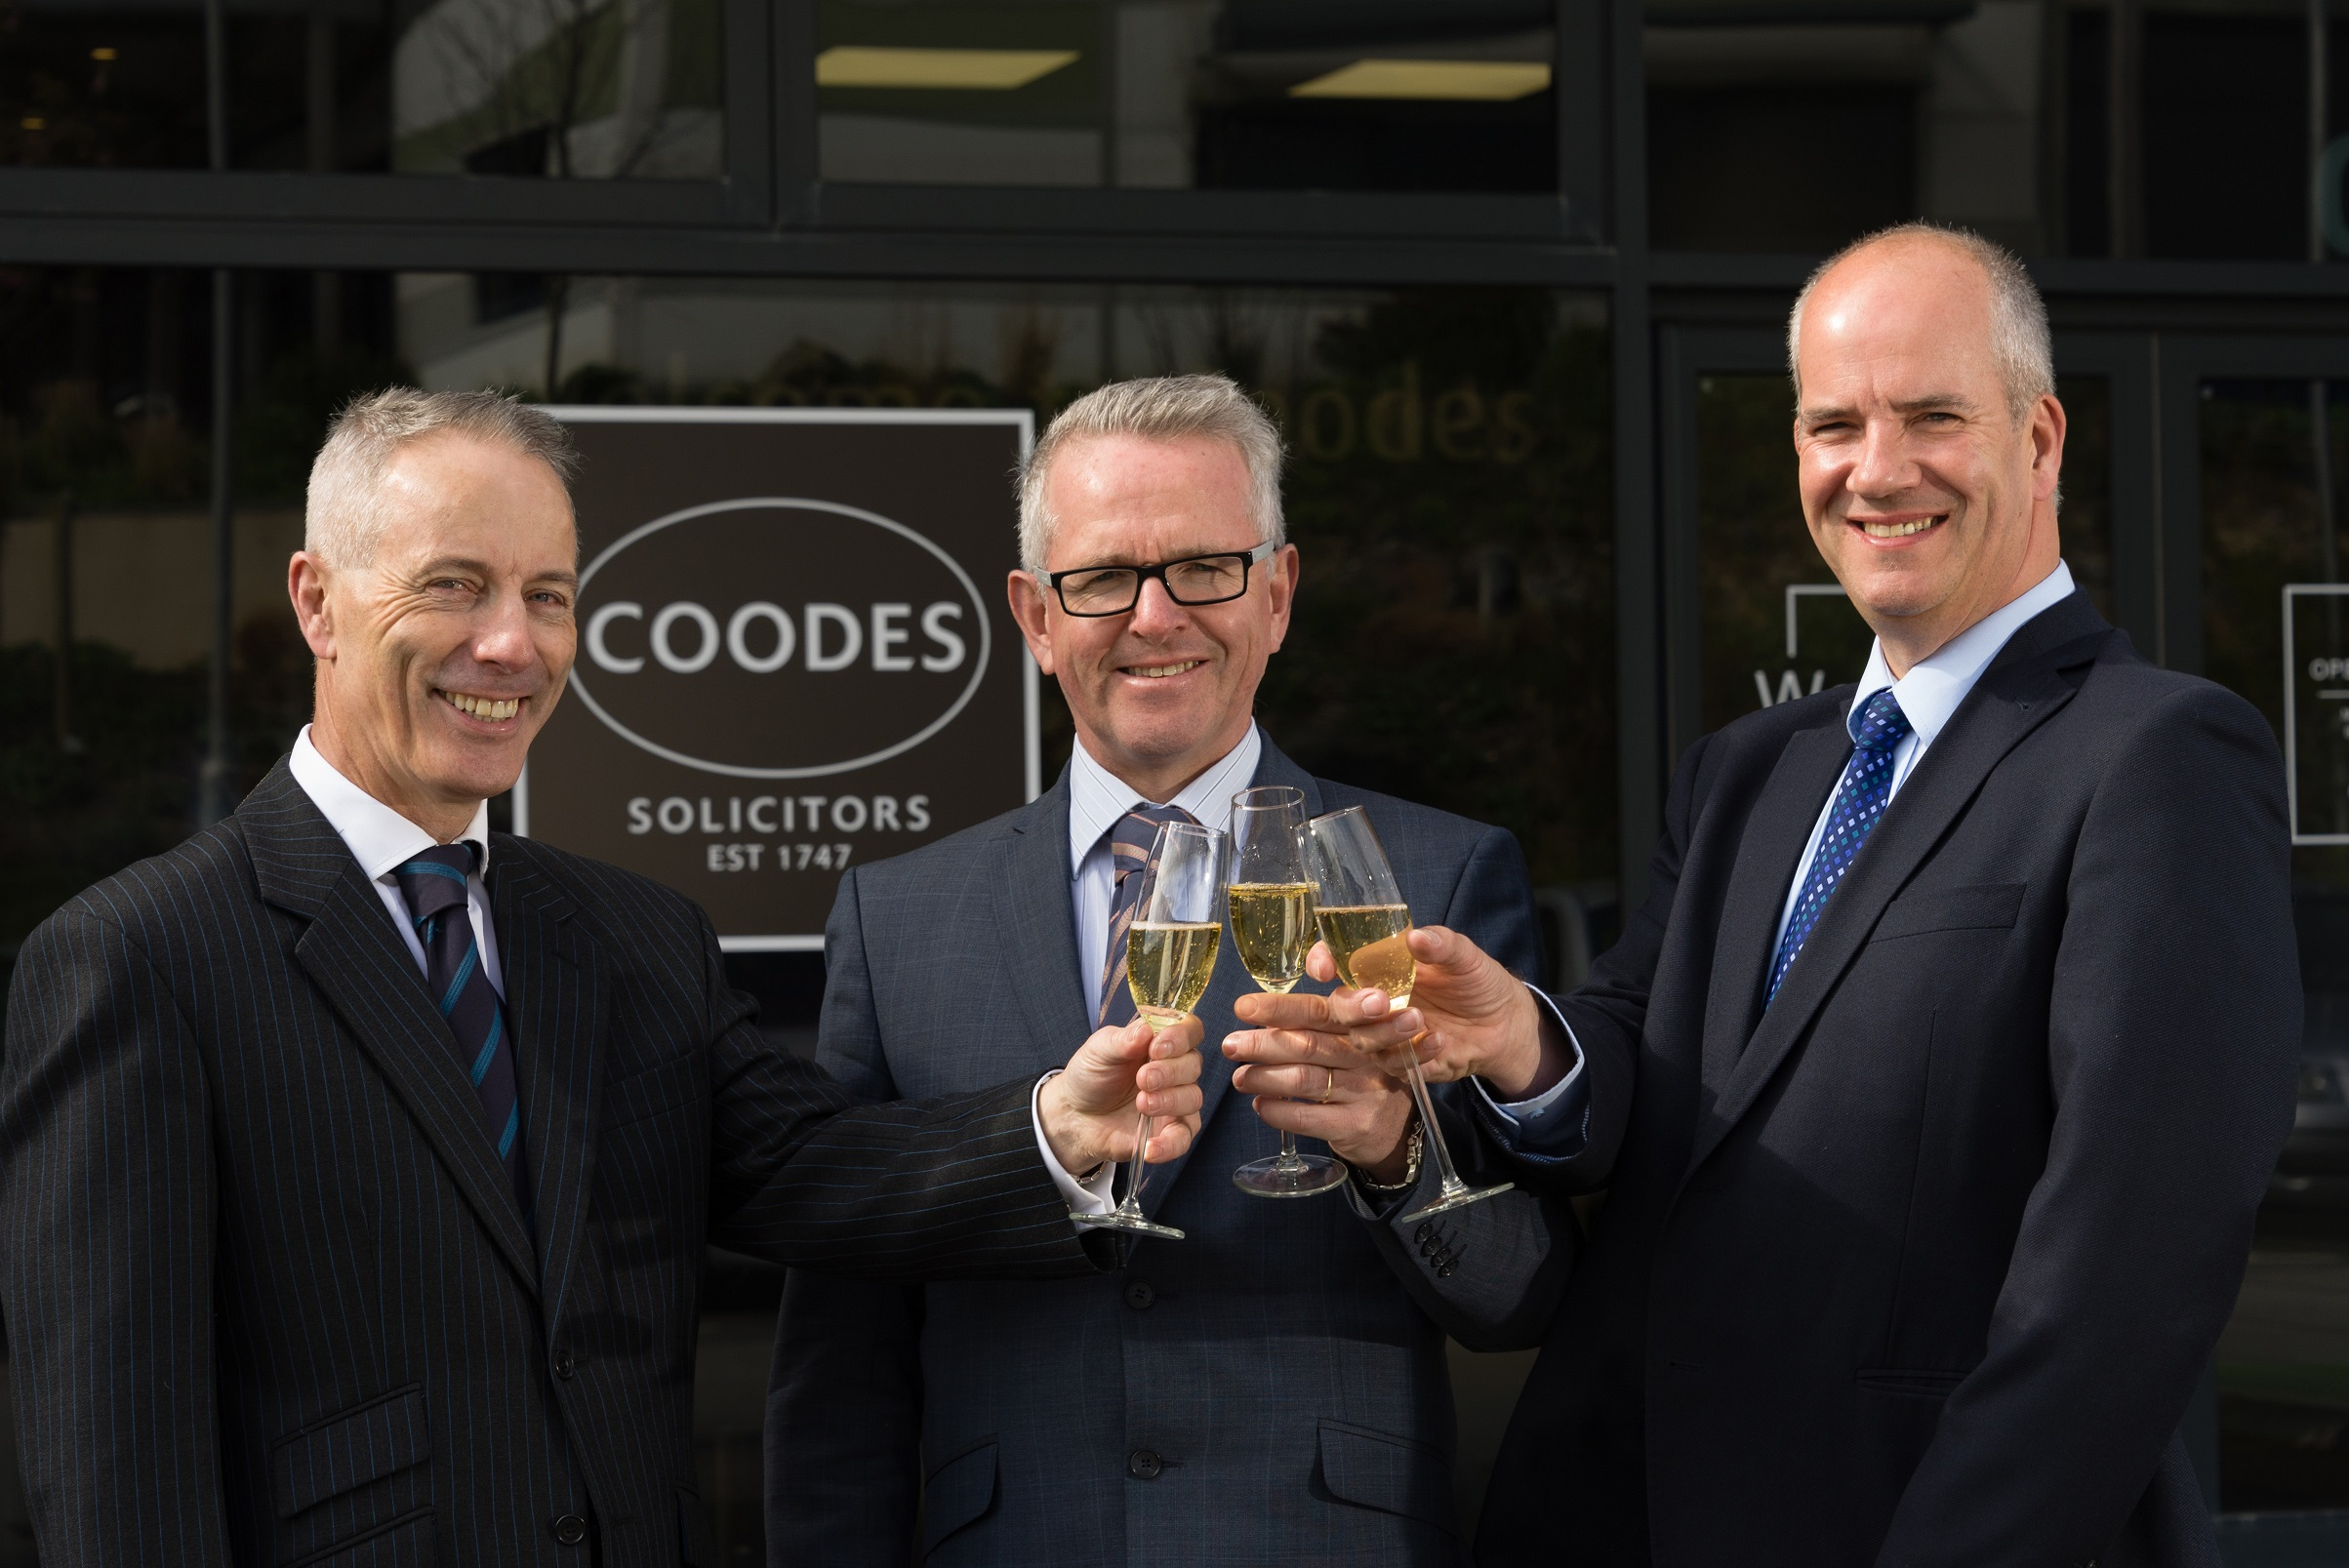 Coodes new St Austell Office 2